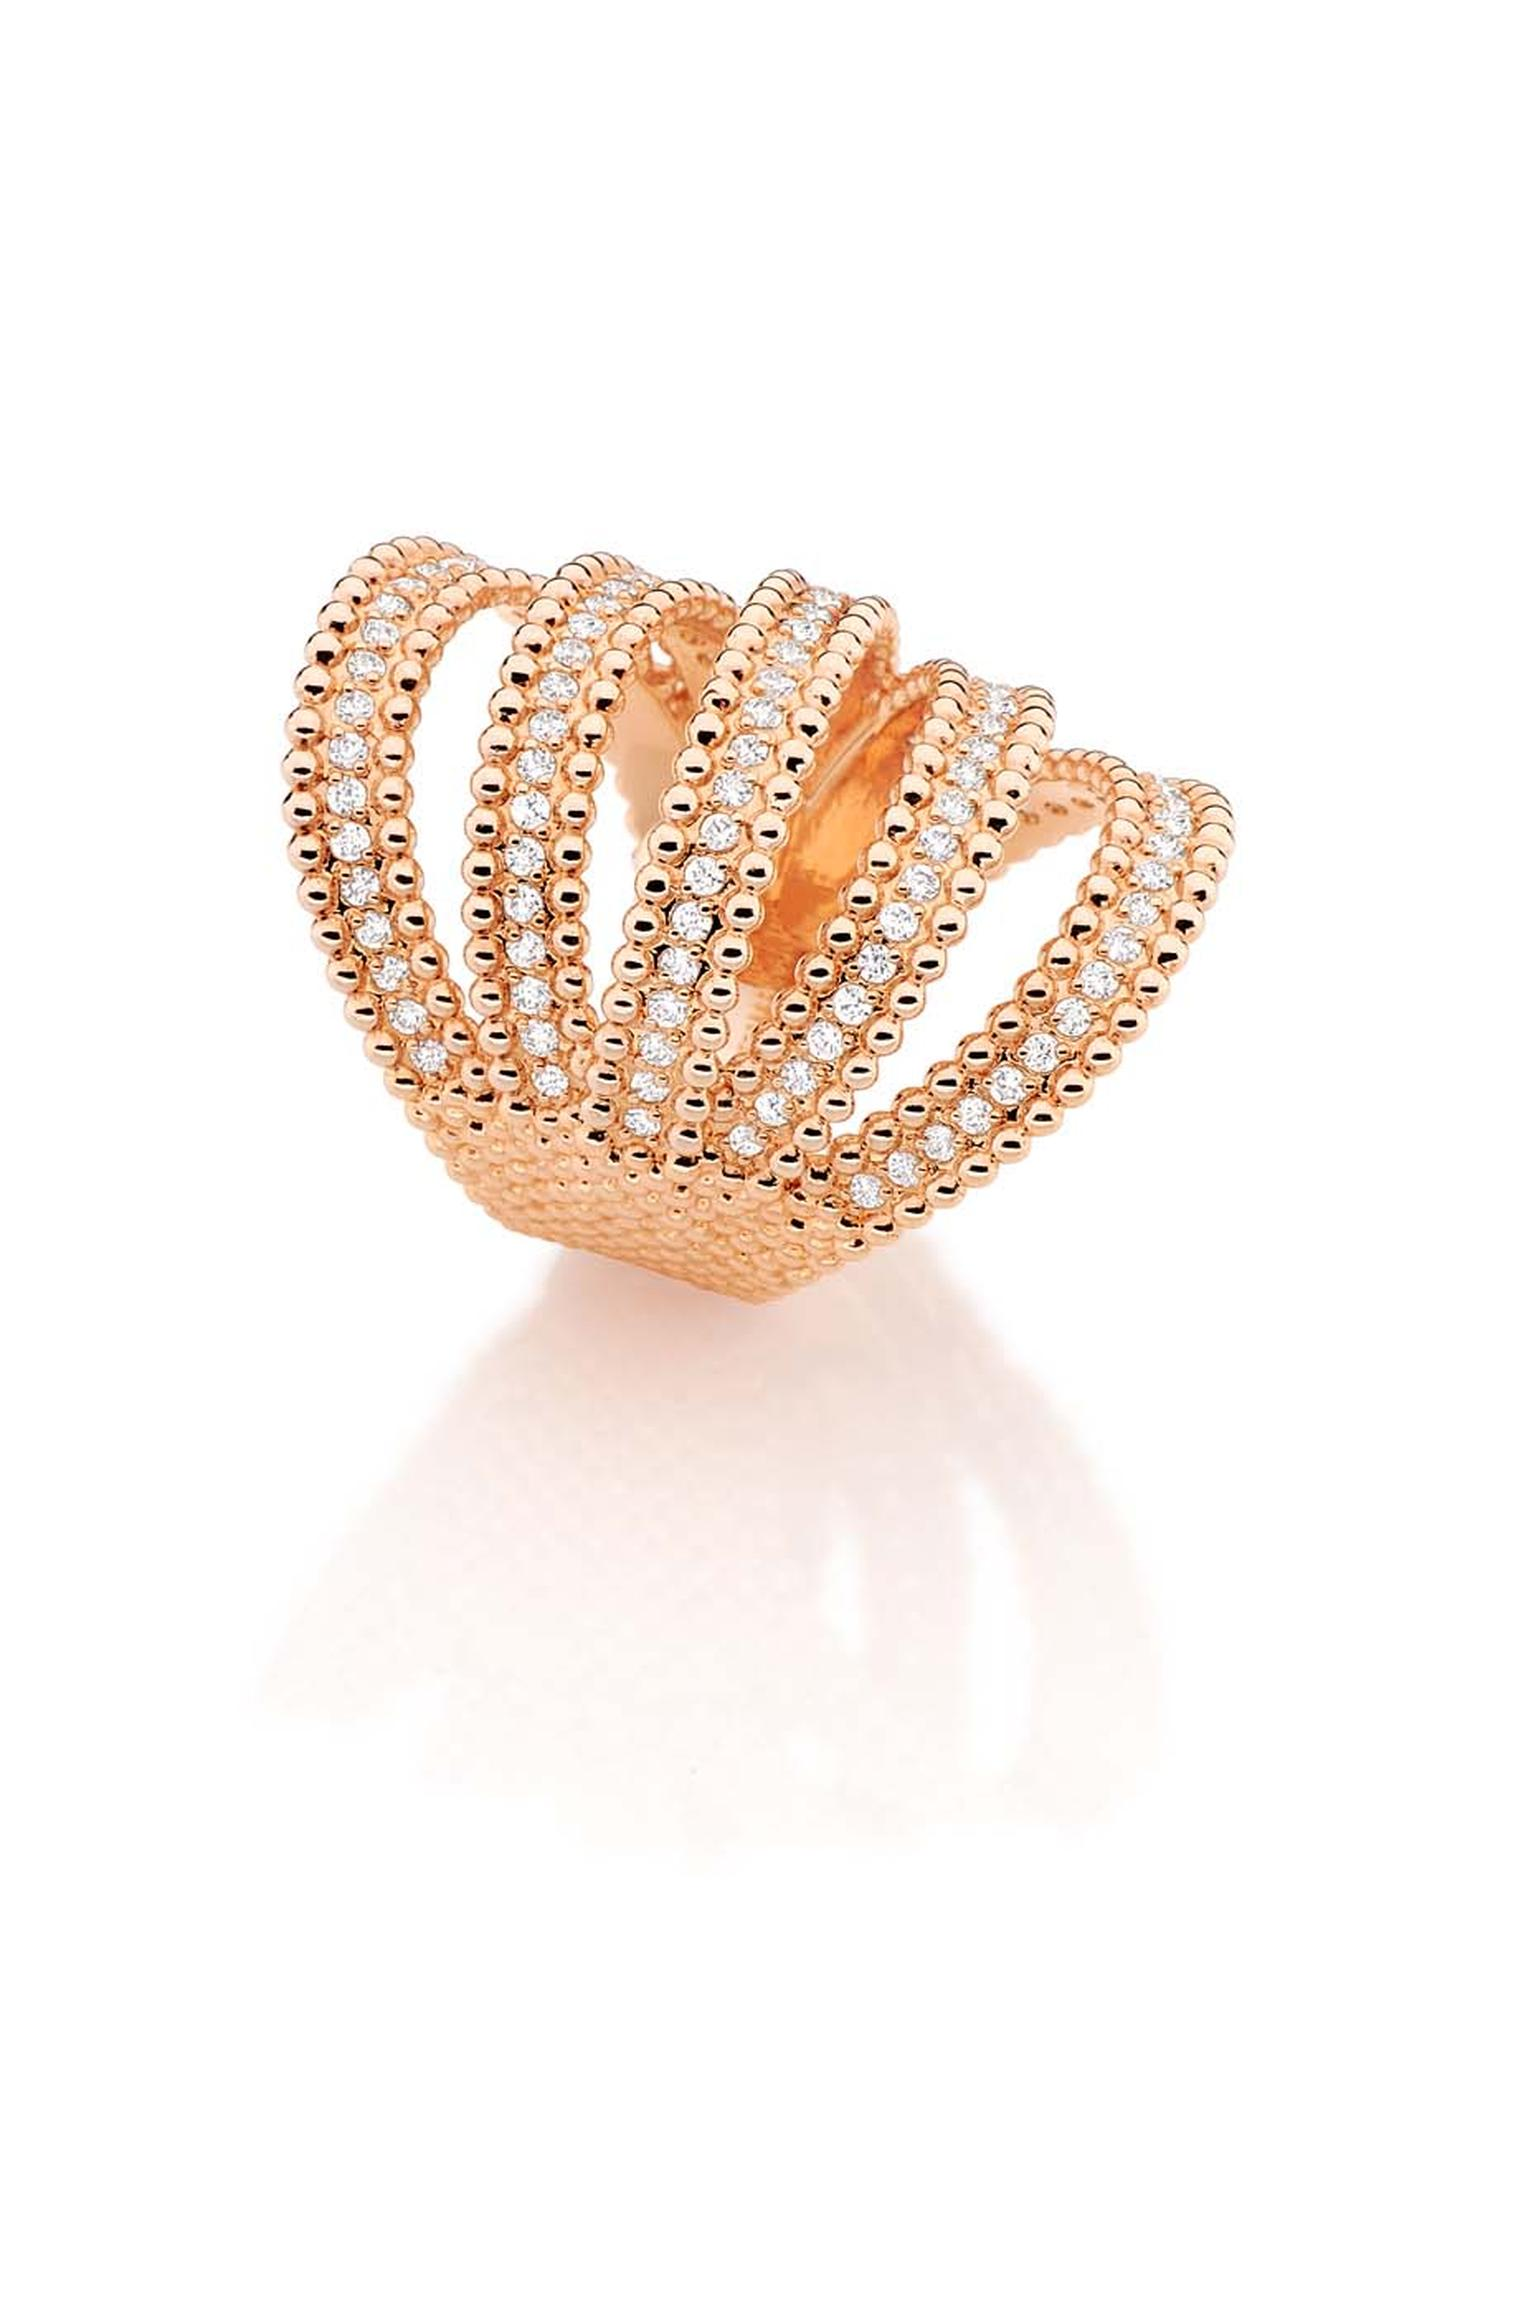 Carla Amorim Russia Collection rose gold Fountain ring, inspired by the architecture of the Peterhof.